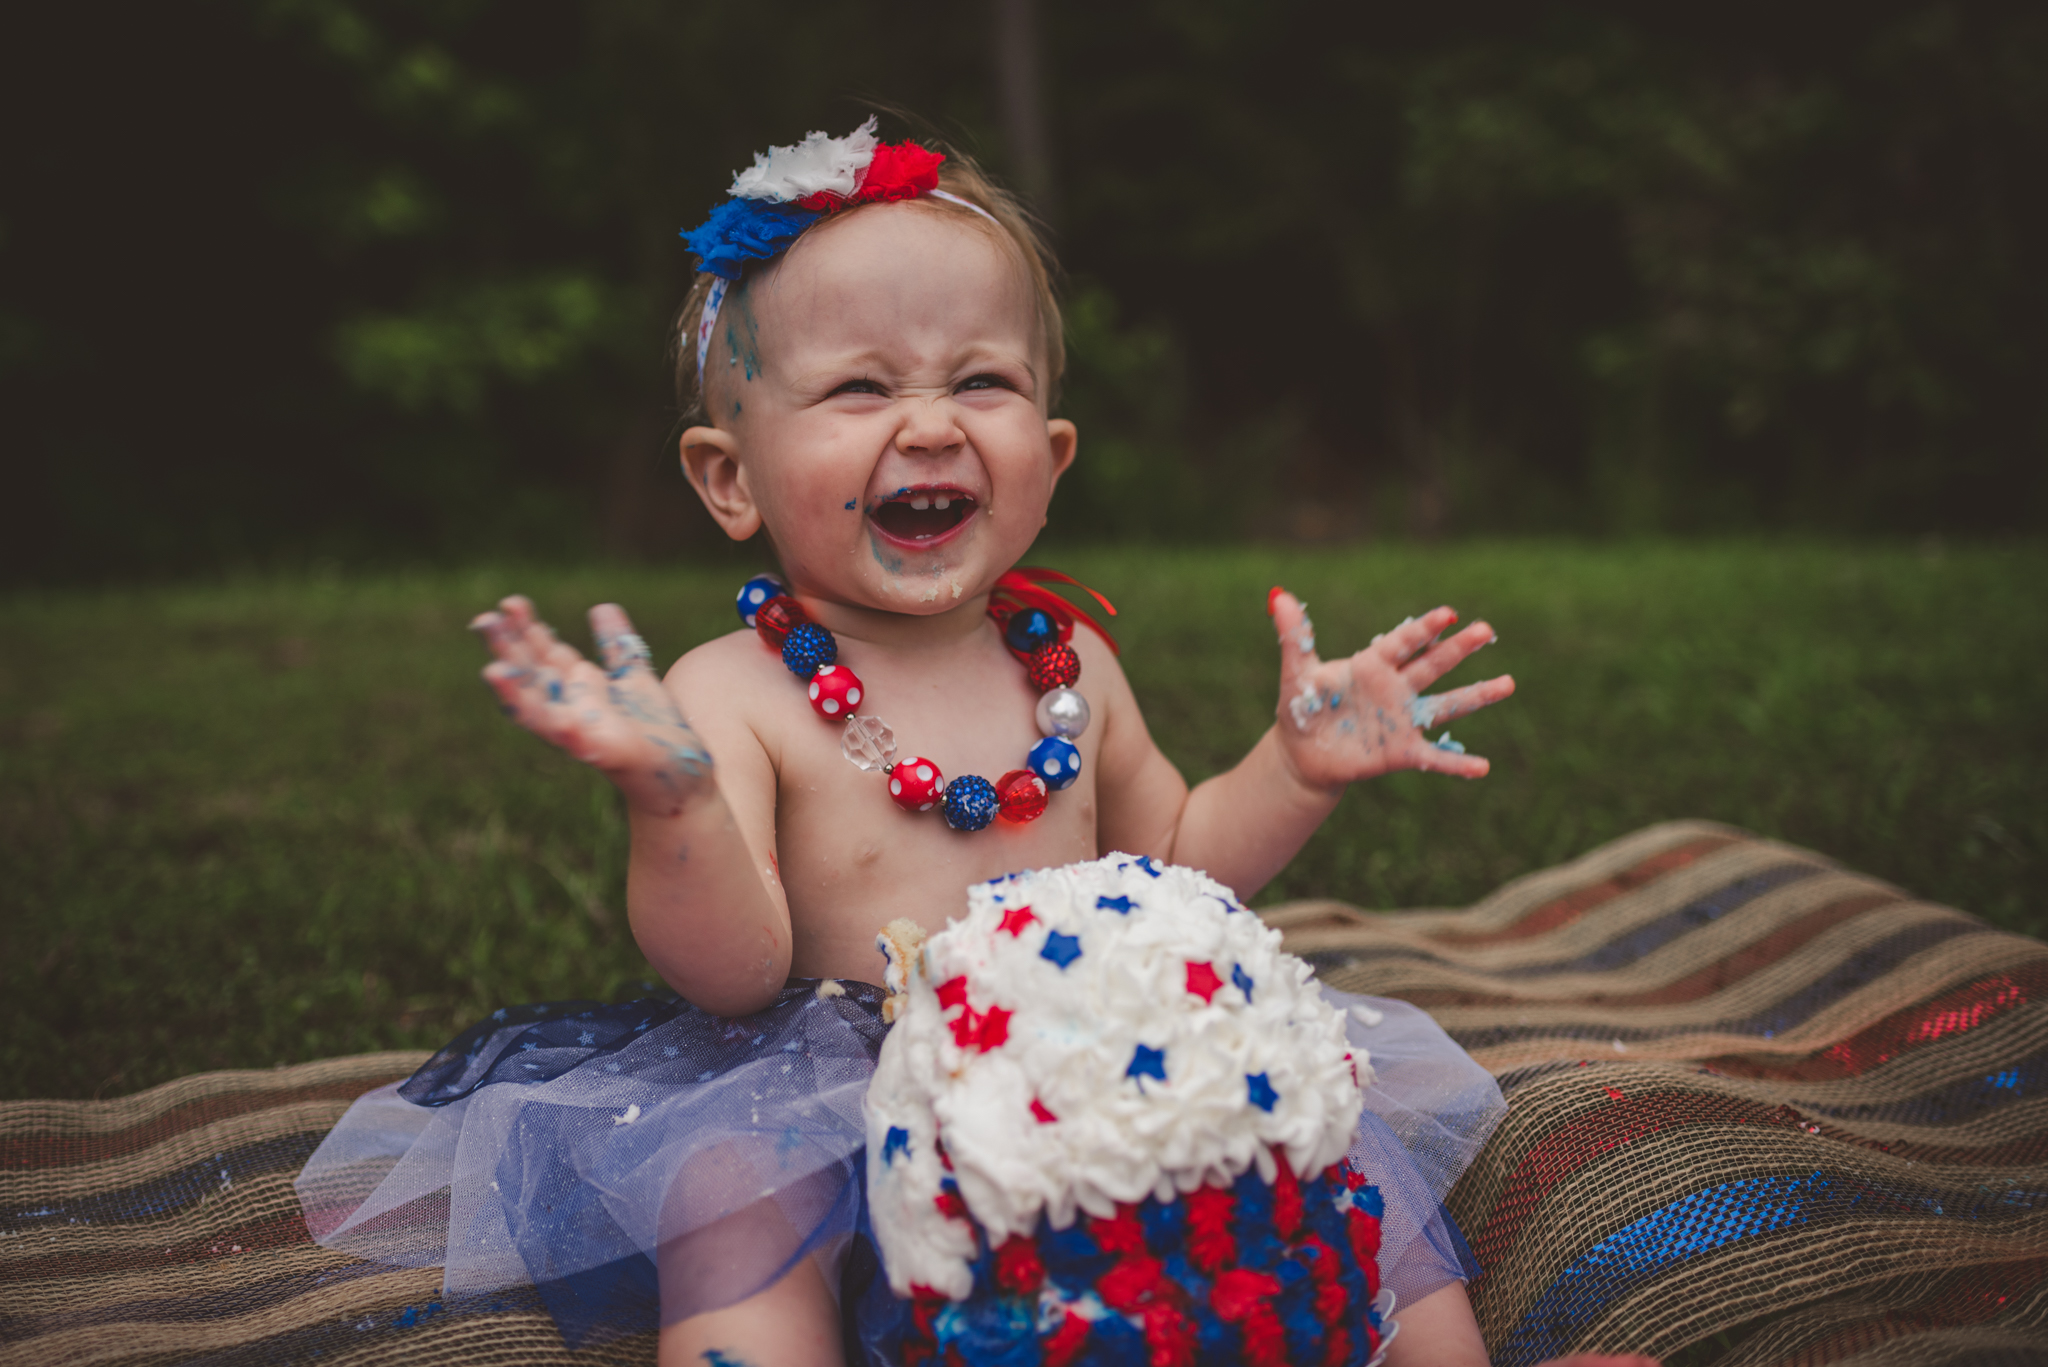 This little girl is very excited about eating her fourth of july themed smash cake for her first birthday in Rolesville, North Carolina, image taken by Rose Trail Images.